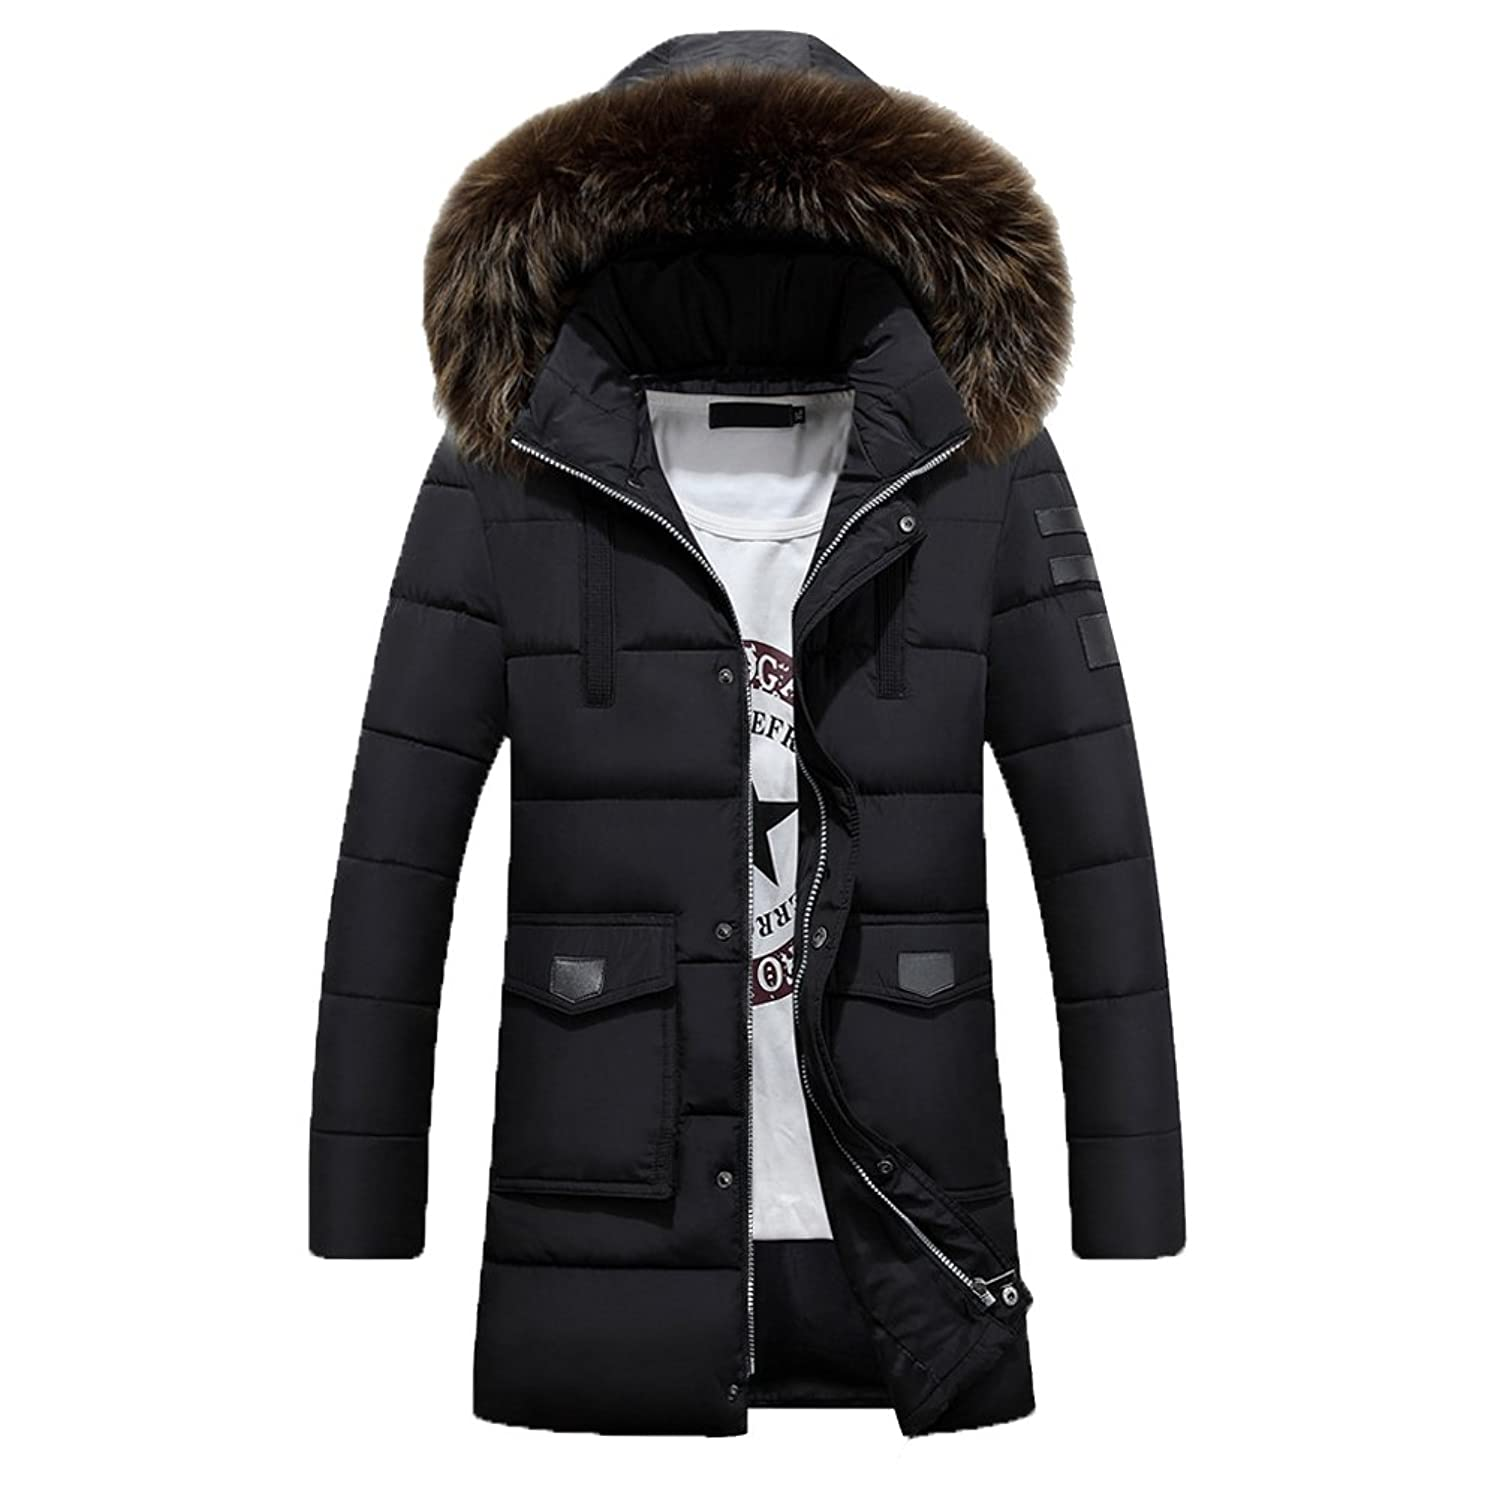 Zhhlaixing Men's Hooded Outerwear Plus Thicken Fashion Winter Overcoat